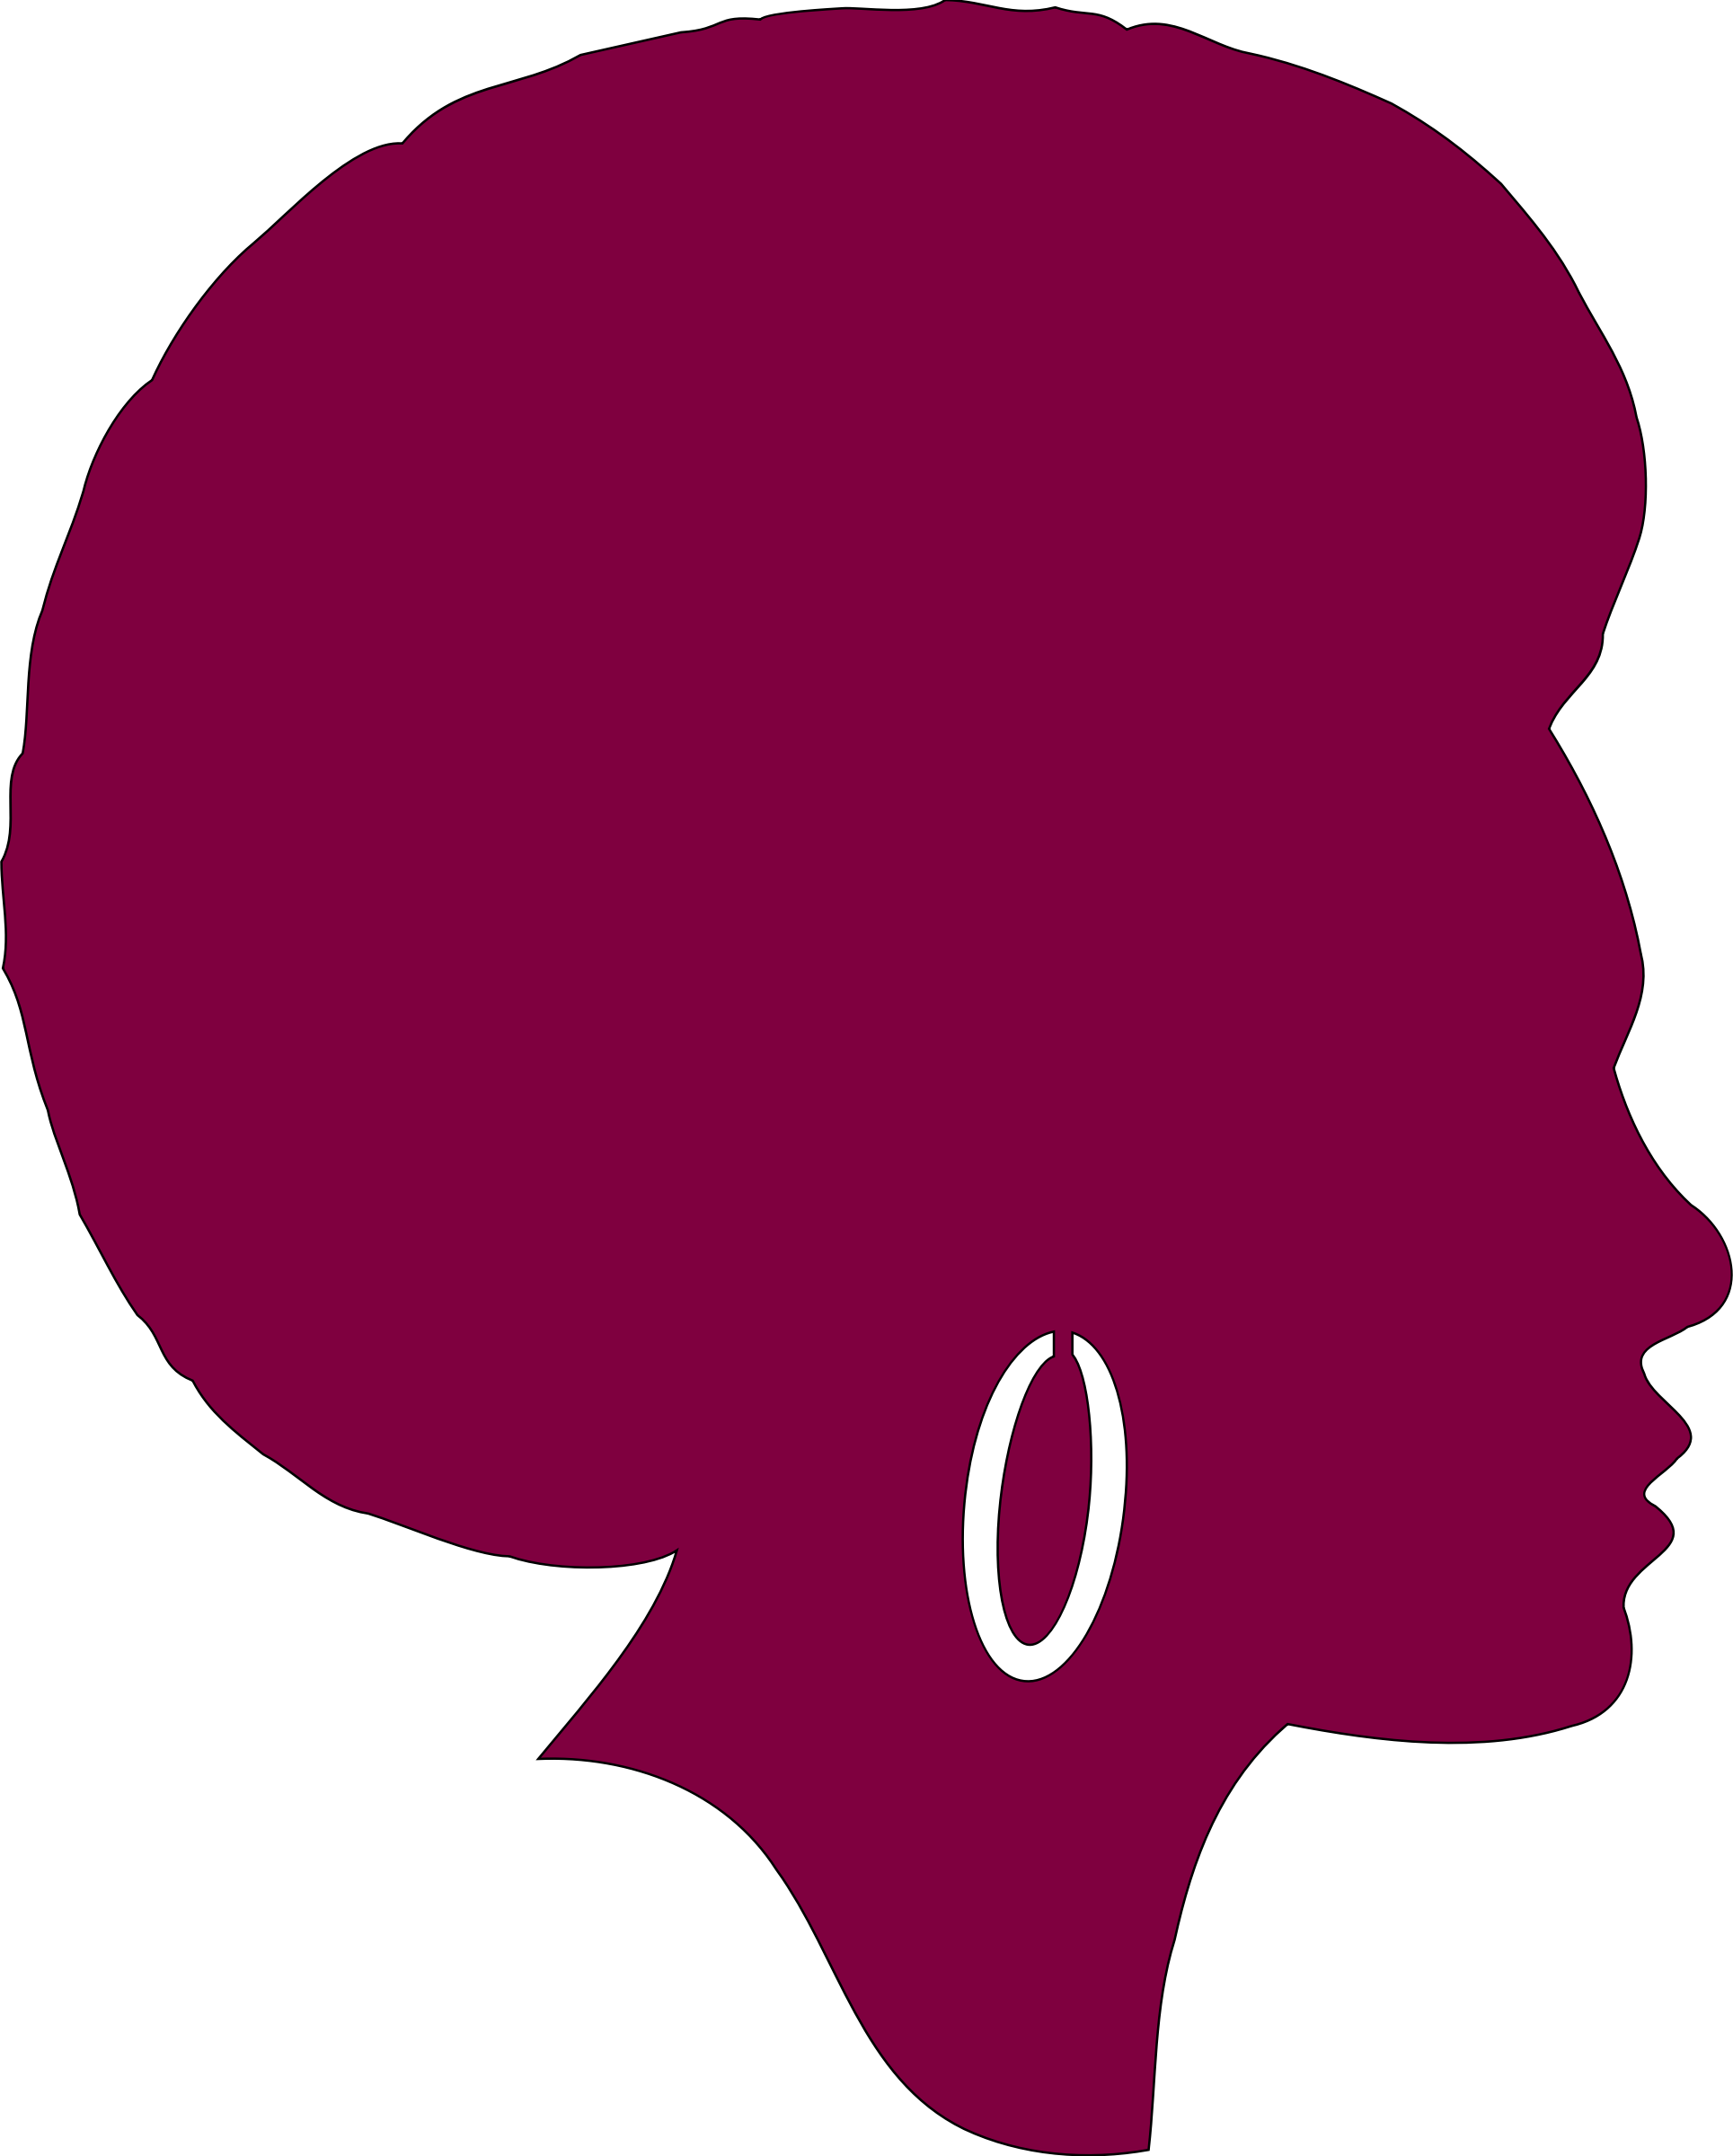 Female clipart afro. Silhouette african american at